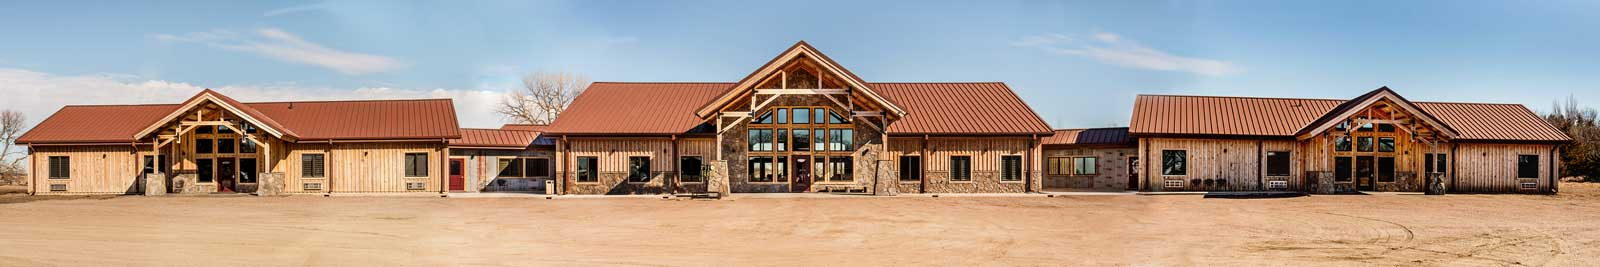 A1 Al's Pheasant Ranch - Event Center: Hunting & Lodging in Emery, South Dakota